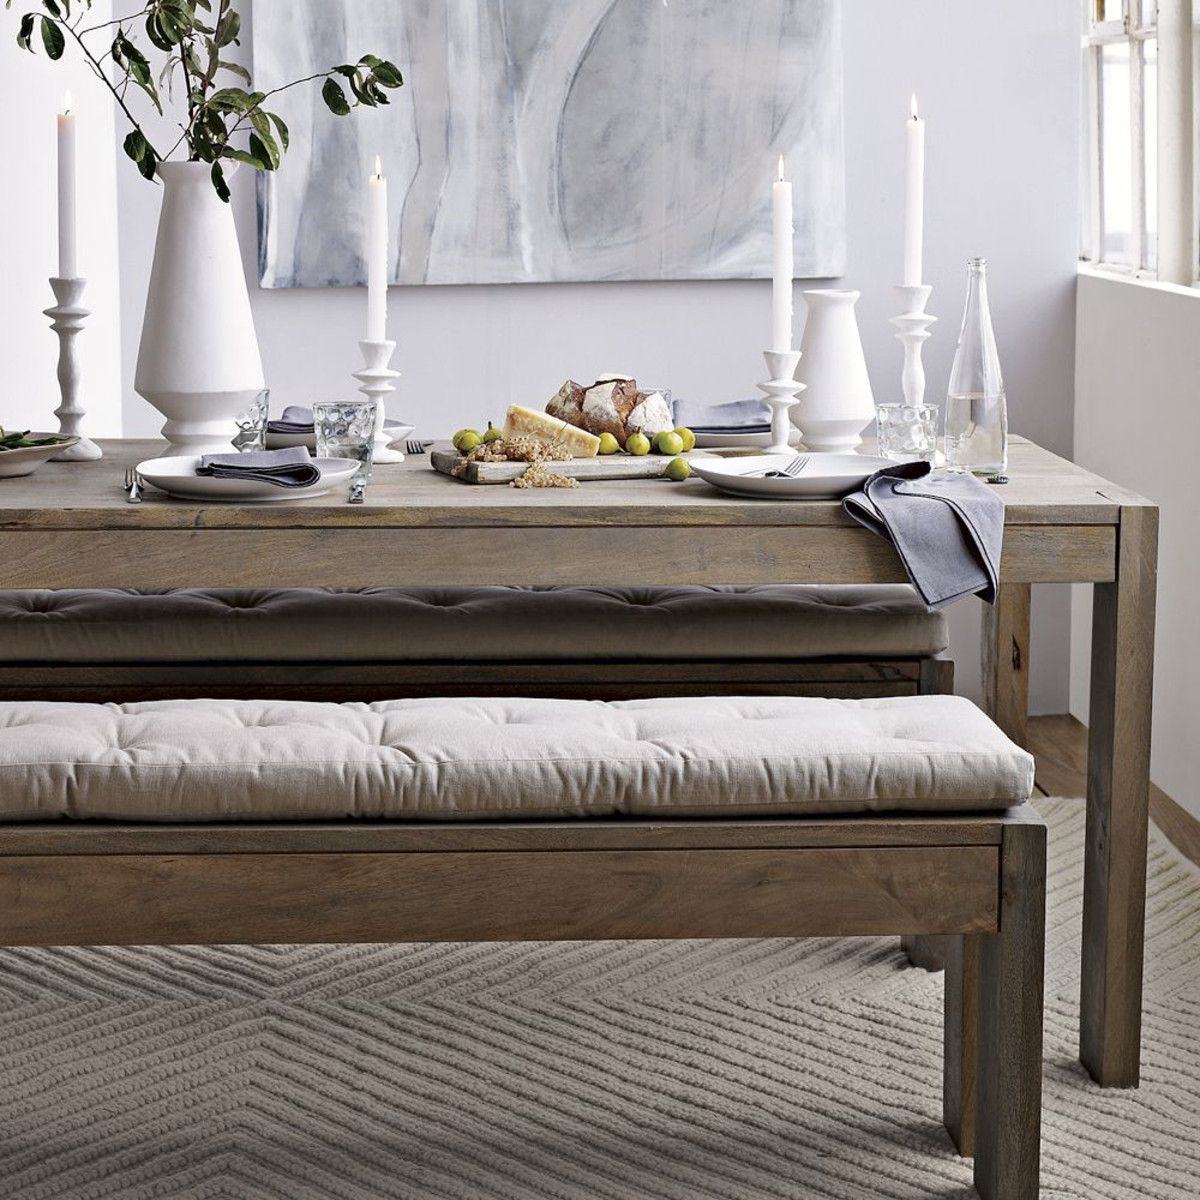 kitchen bench cushions pantry organization and flower designer ideas leather in 2019